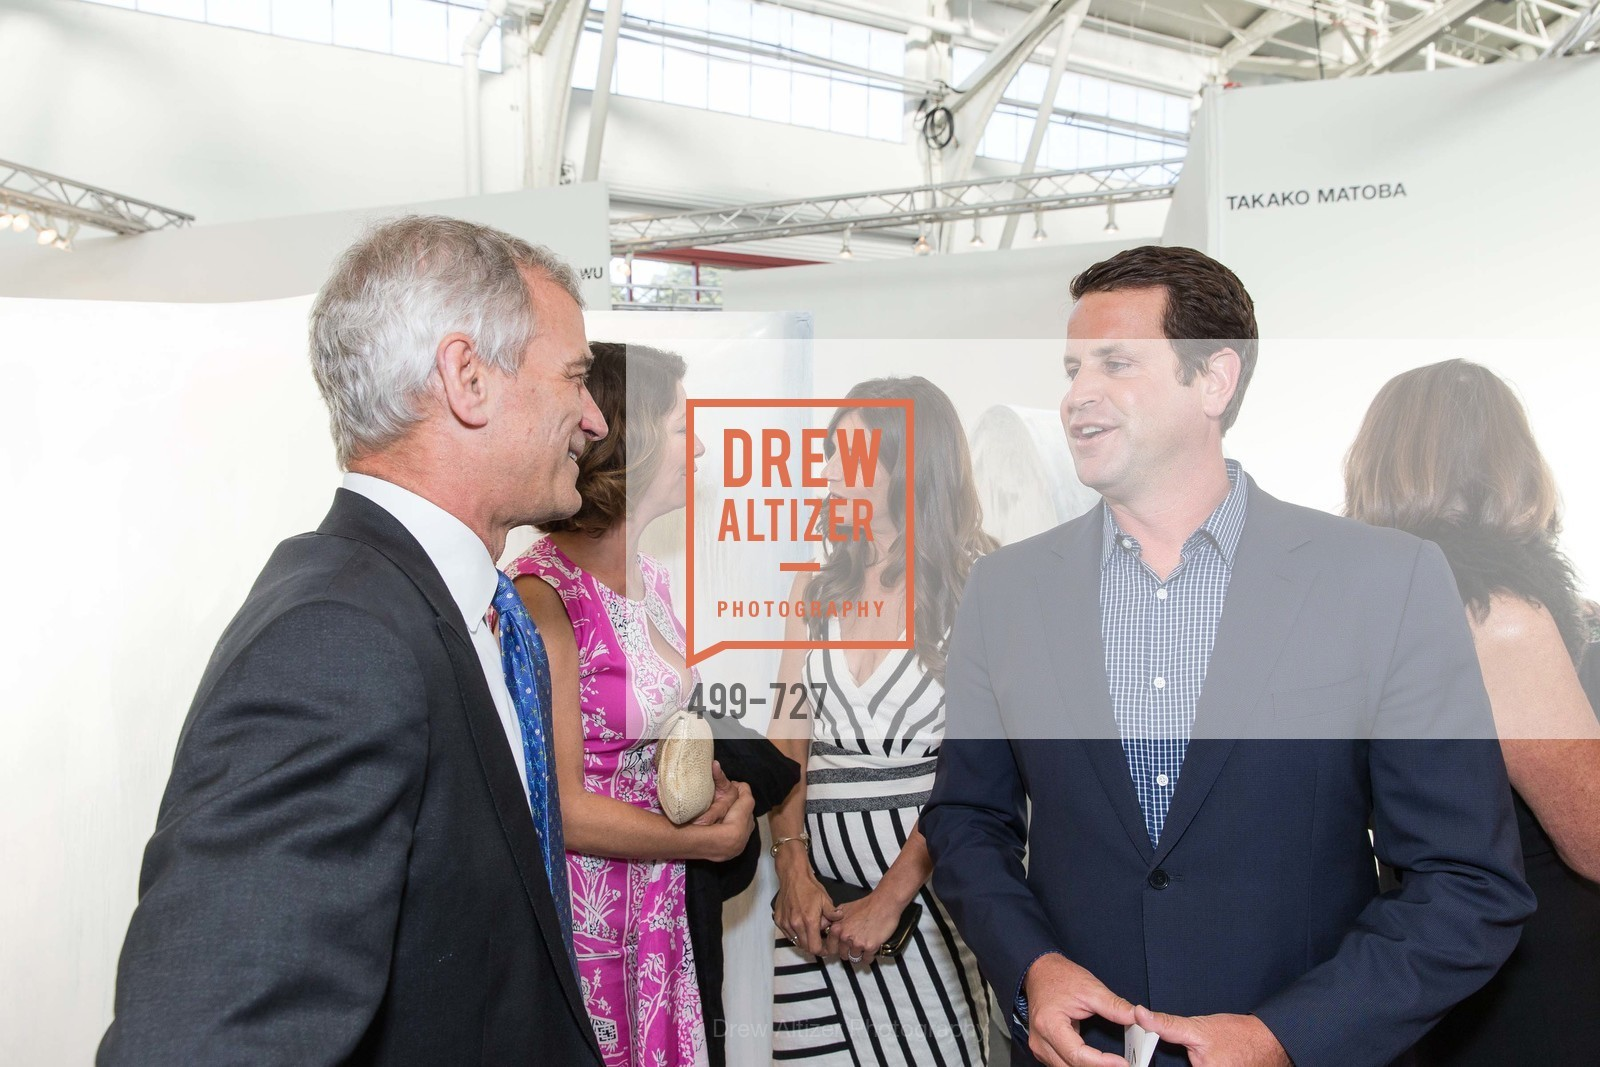 Nick Heldfond, SAN FRANCISCO ART INSTITUTE Gala Honoring Art Visionary and Advocate ROSELYNE CHROMAN SWIG, US, May 14th, 2015,Drew Altizer, Drew Altizer Photography, full-service agency, private events, San Francisco photographer, photographer california